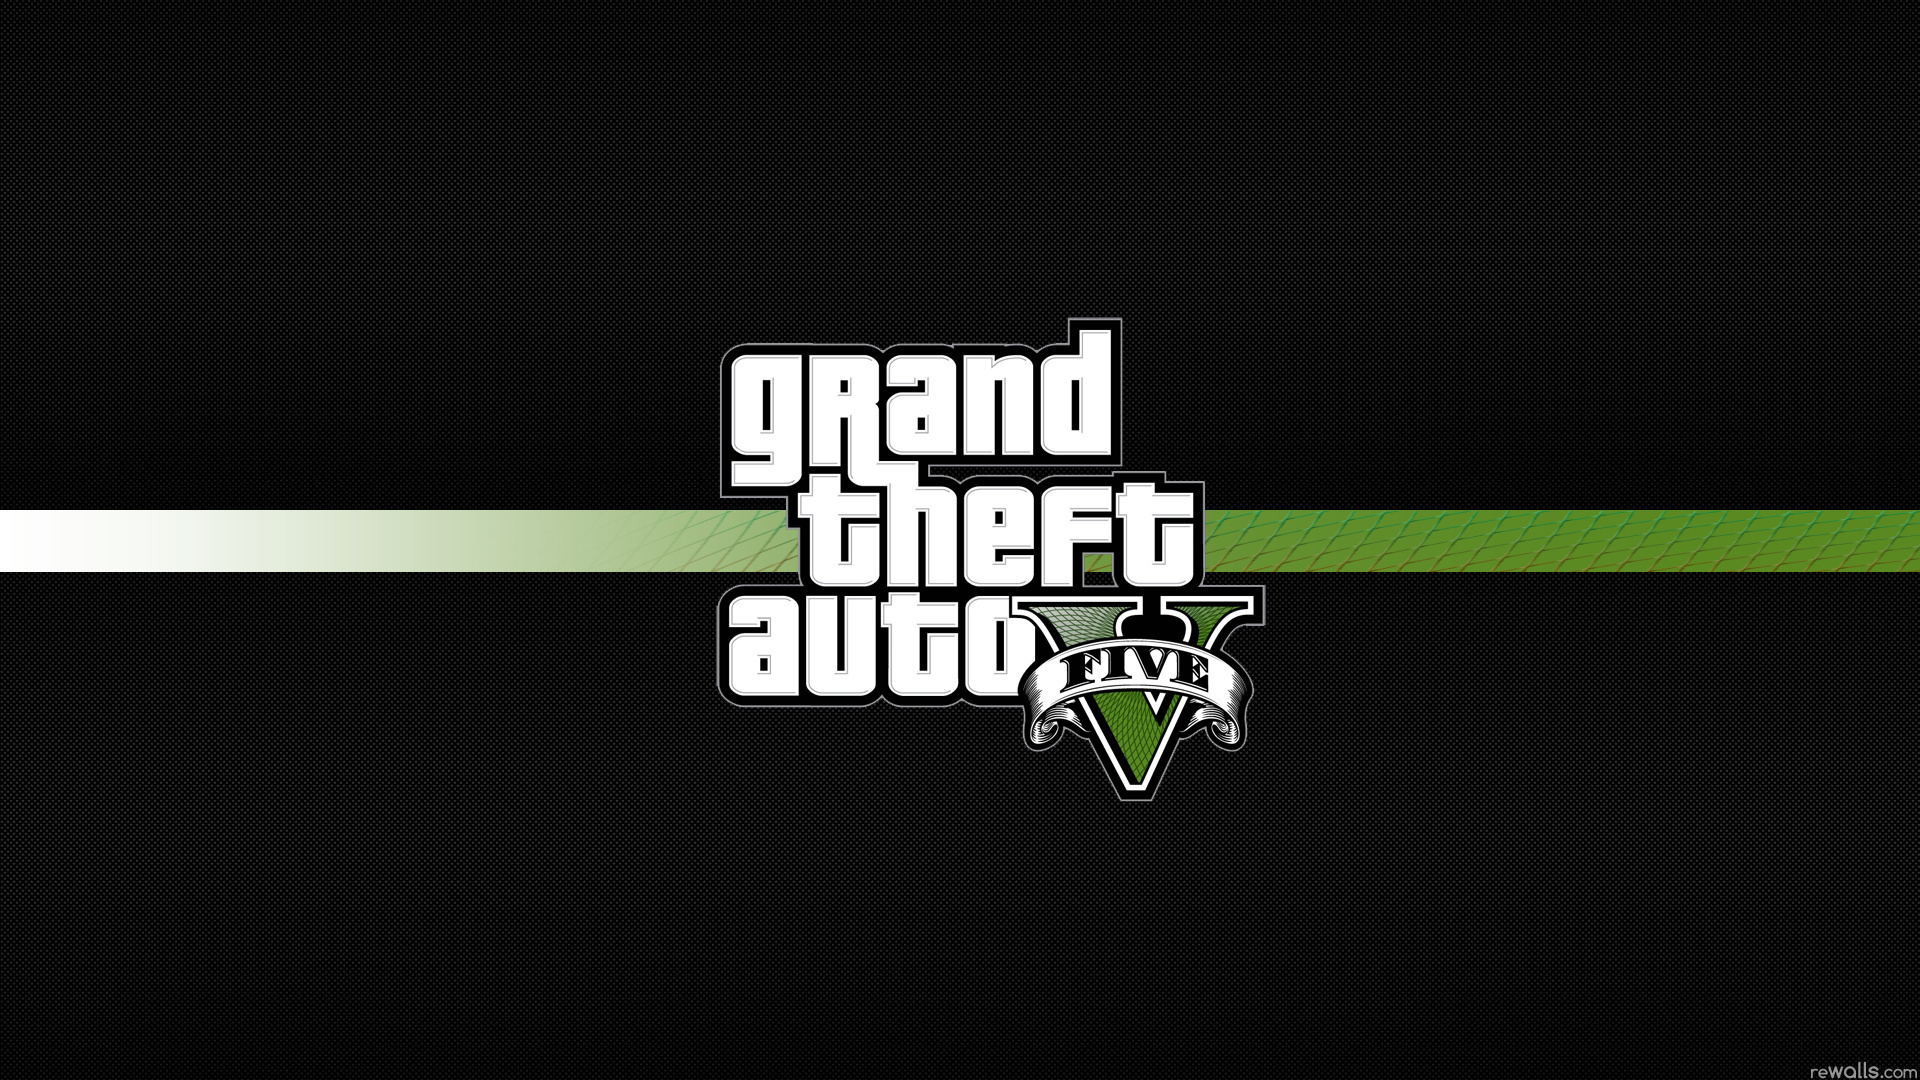 Grand theft auto V black wallpaper hd wallpapers and images 1920x1080